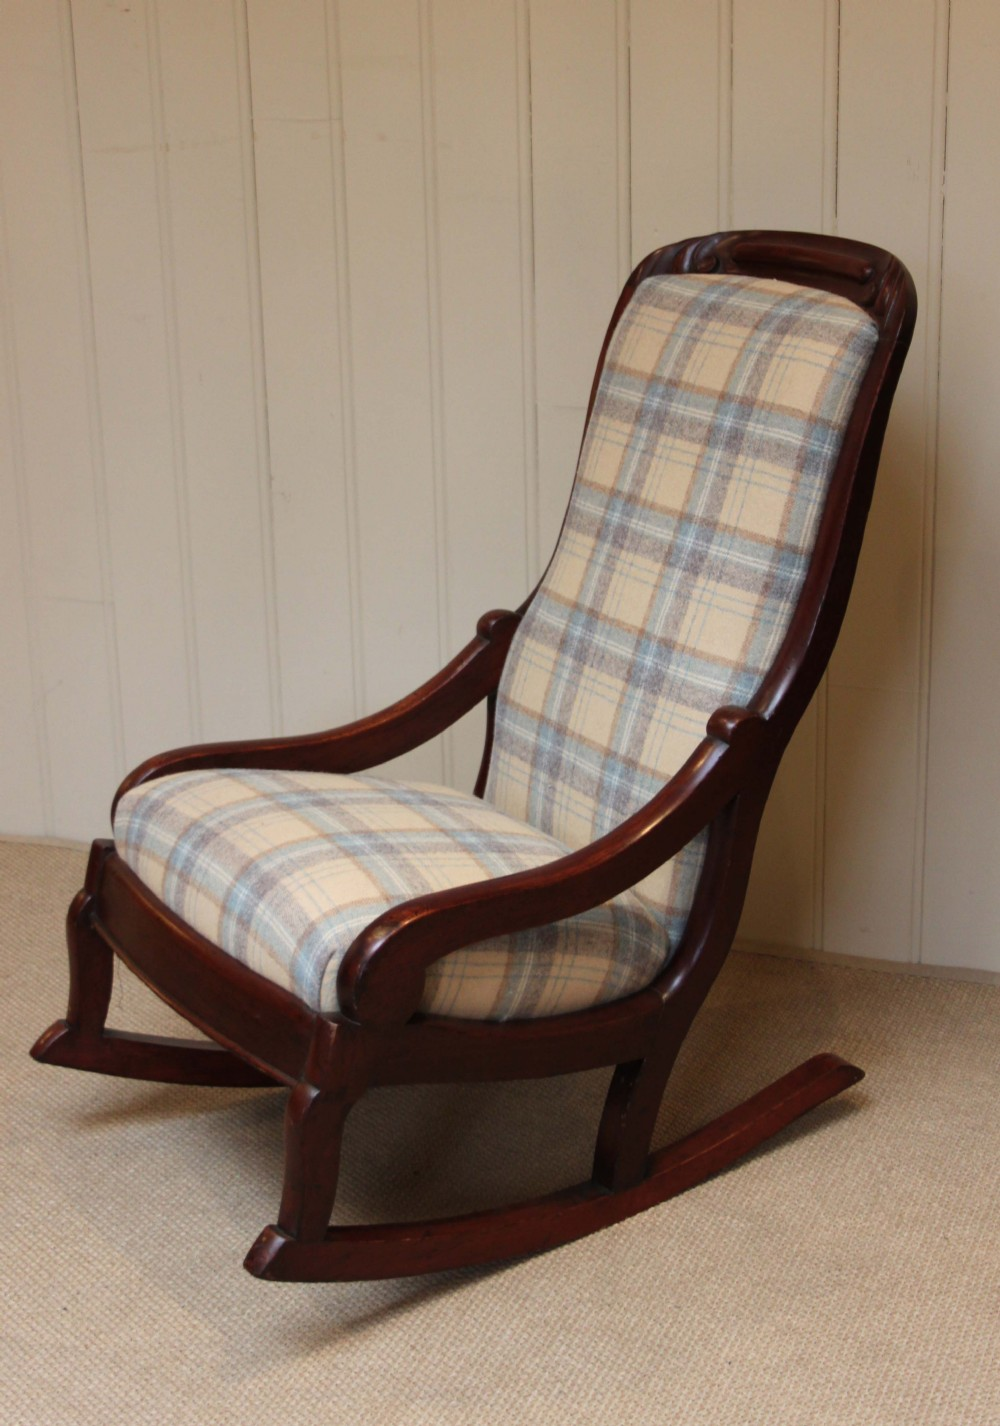 late victorian upholstered rocking chair - Late Victorian Upholstered Rocking Chair 244300 Sellingantiques